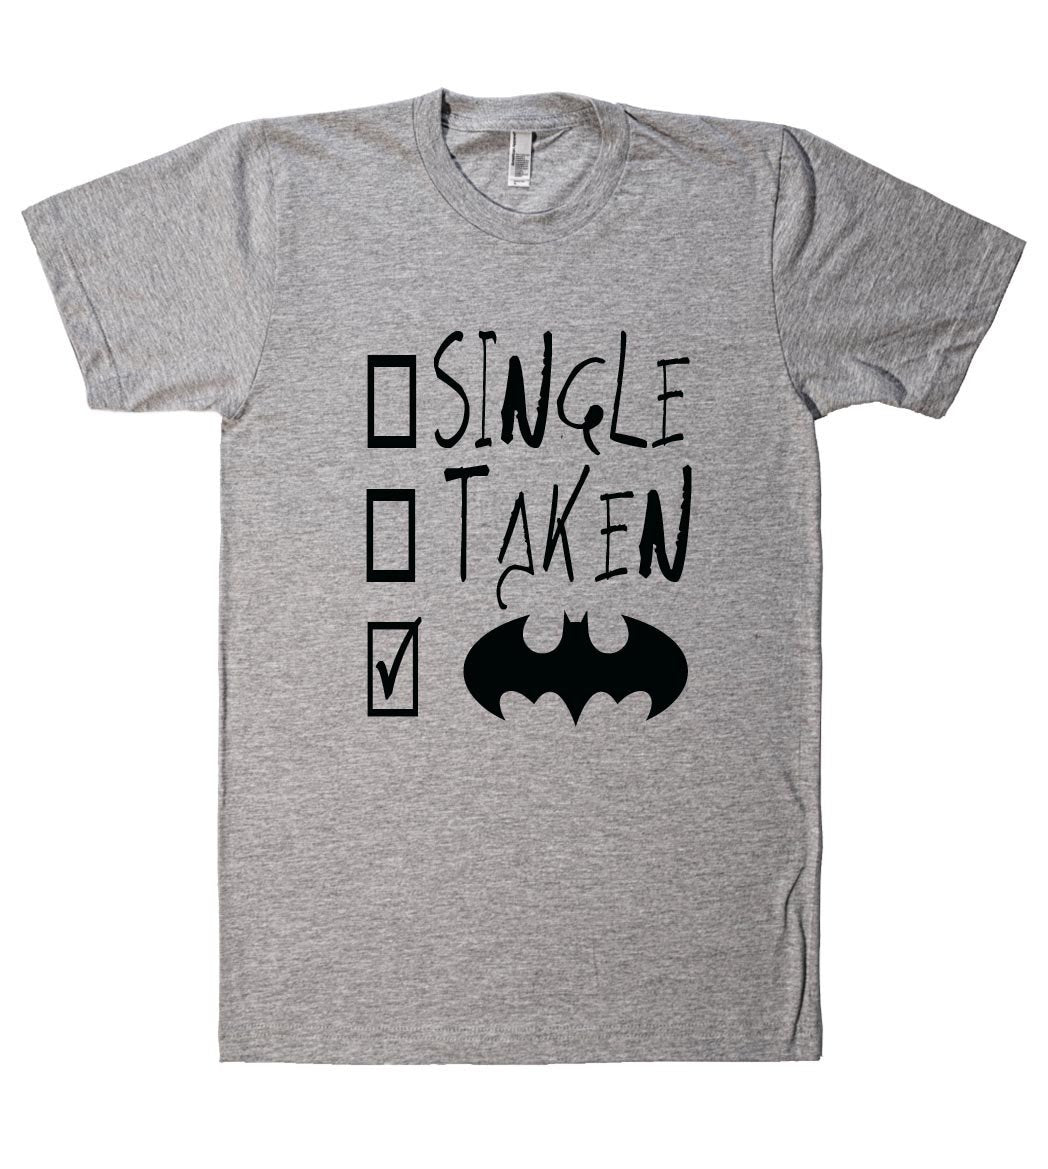 single taken tshirt - Shirtoopia